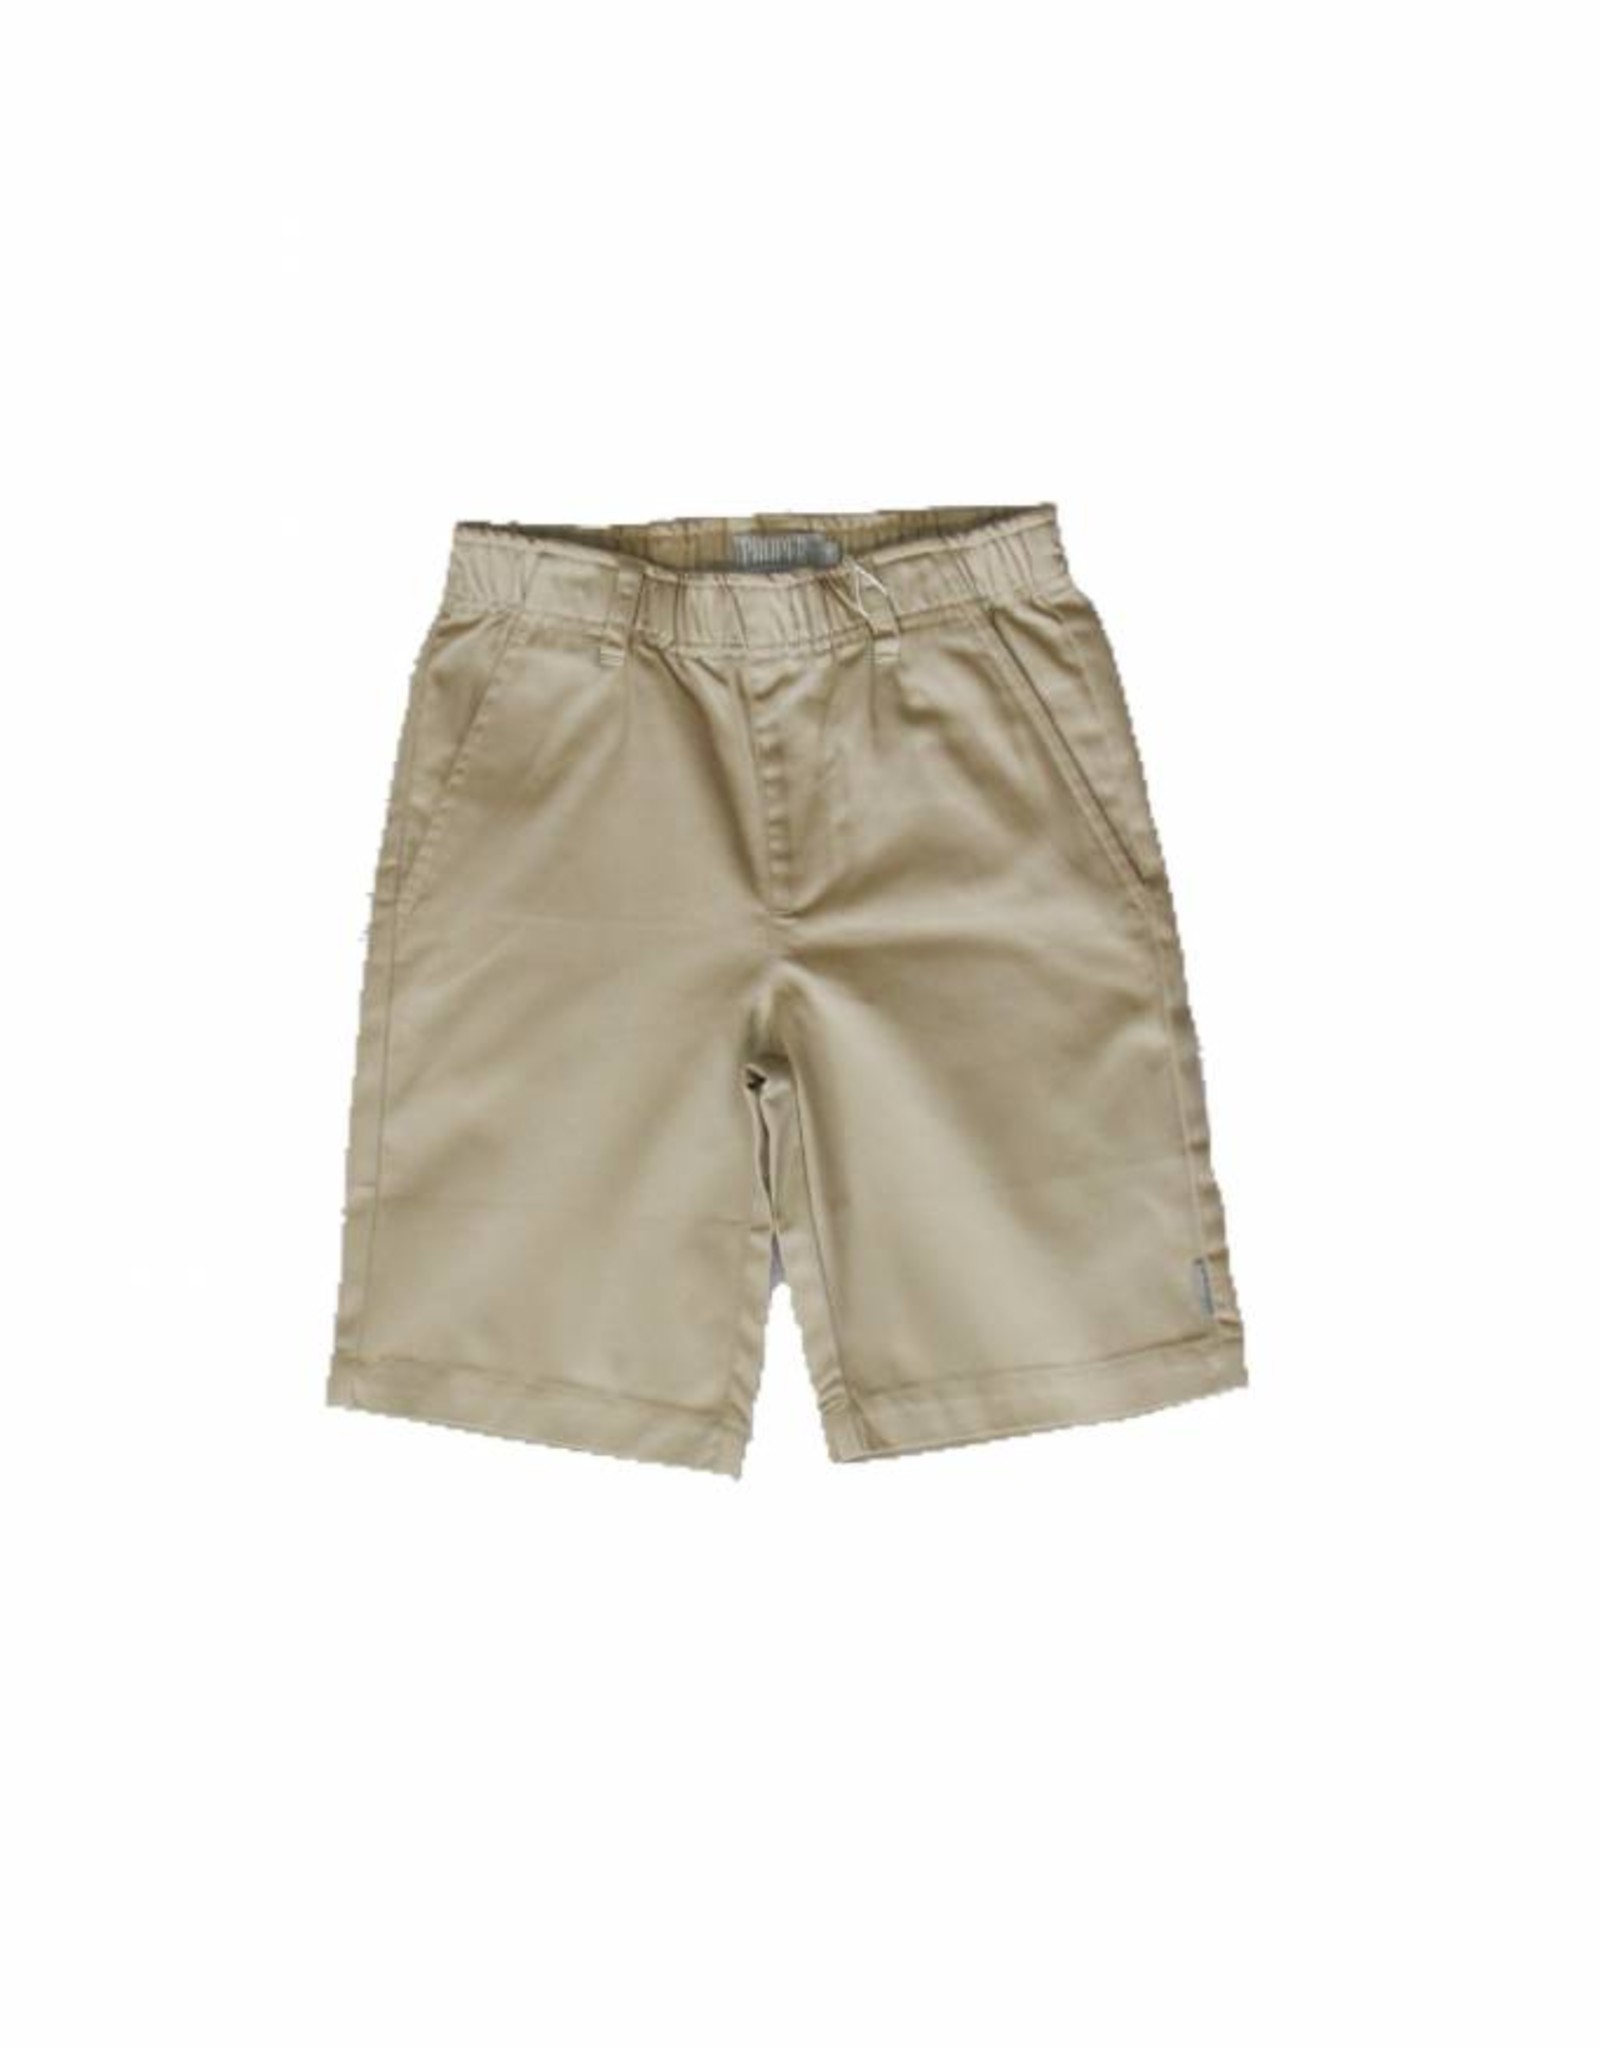 Proper Uniforms Shorts w/Elastic Youth